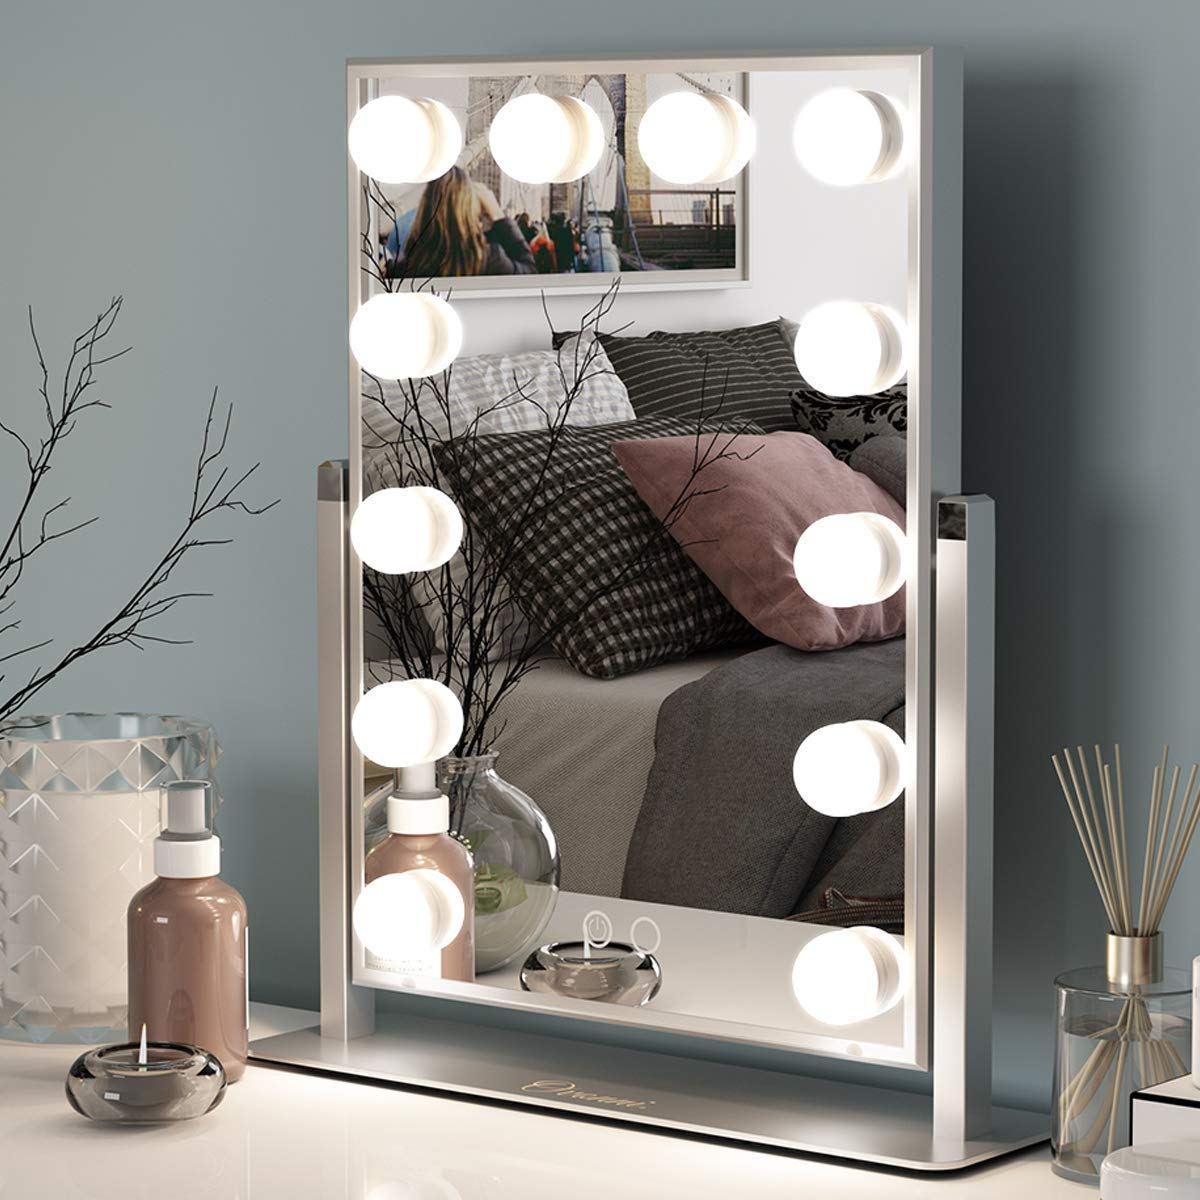 Ovonni Vanity Makeup Hollywood Mirror with 12 Detachable LED Bulbs and 2 Replacement Bulbs 2 Colors Touch Control Dimmable Brightness 360 Rotating for Bedroom Dressing Table 12 bulbs, Sliver